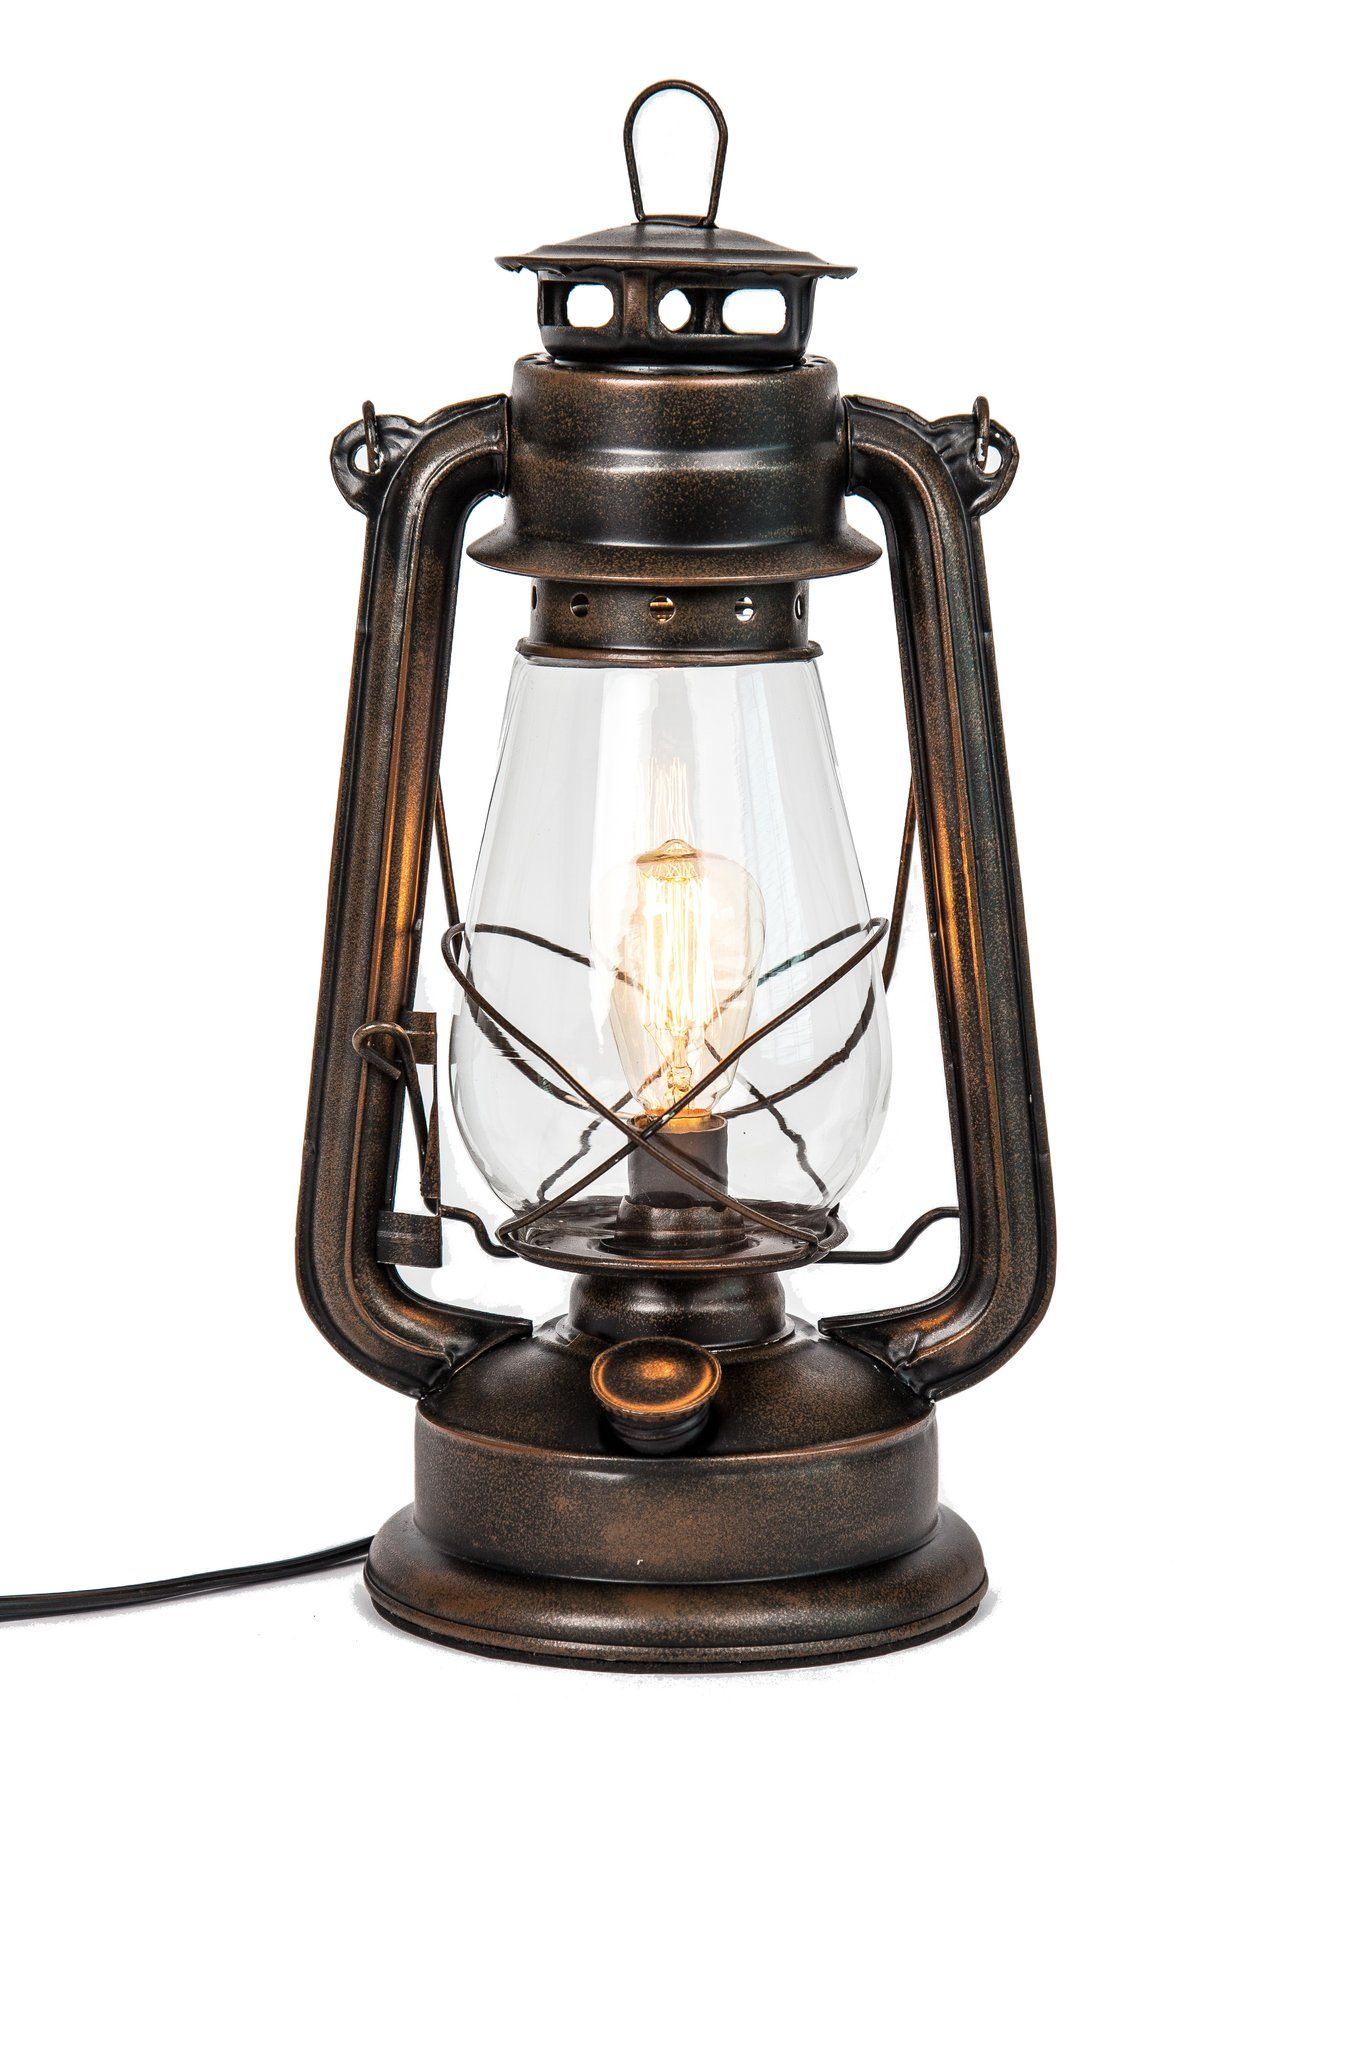 Electric Oil Lantern Table Lamp With Inline Dimmer On Plug In Cord By Muskoka Lifestyle Products Electric Lanterns Lantern Table Lamp Lantern Lamp